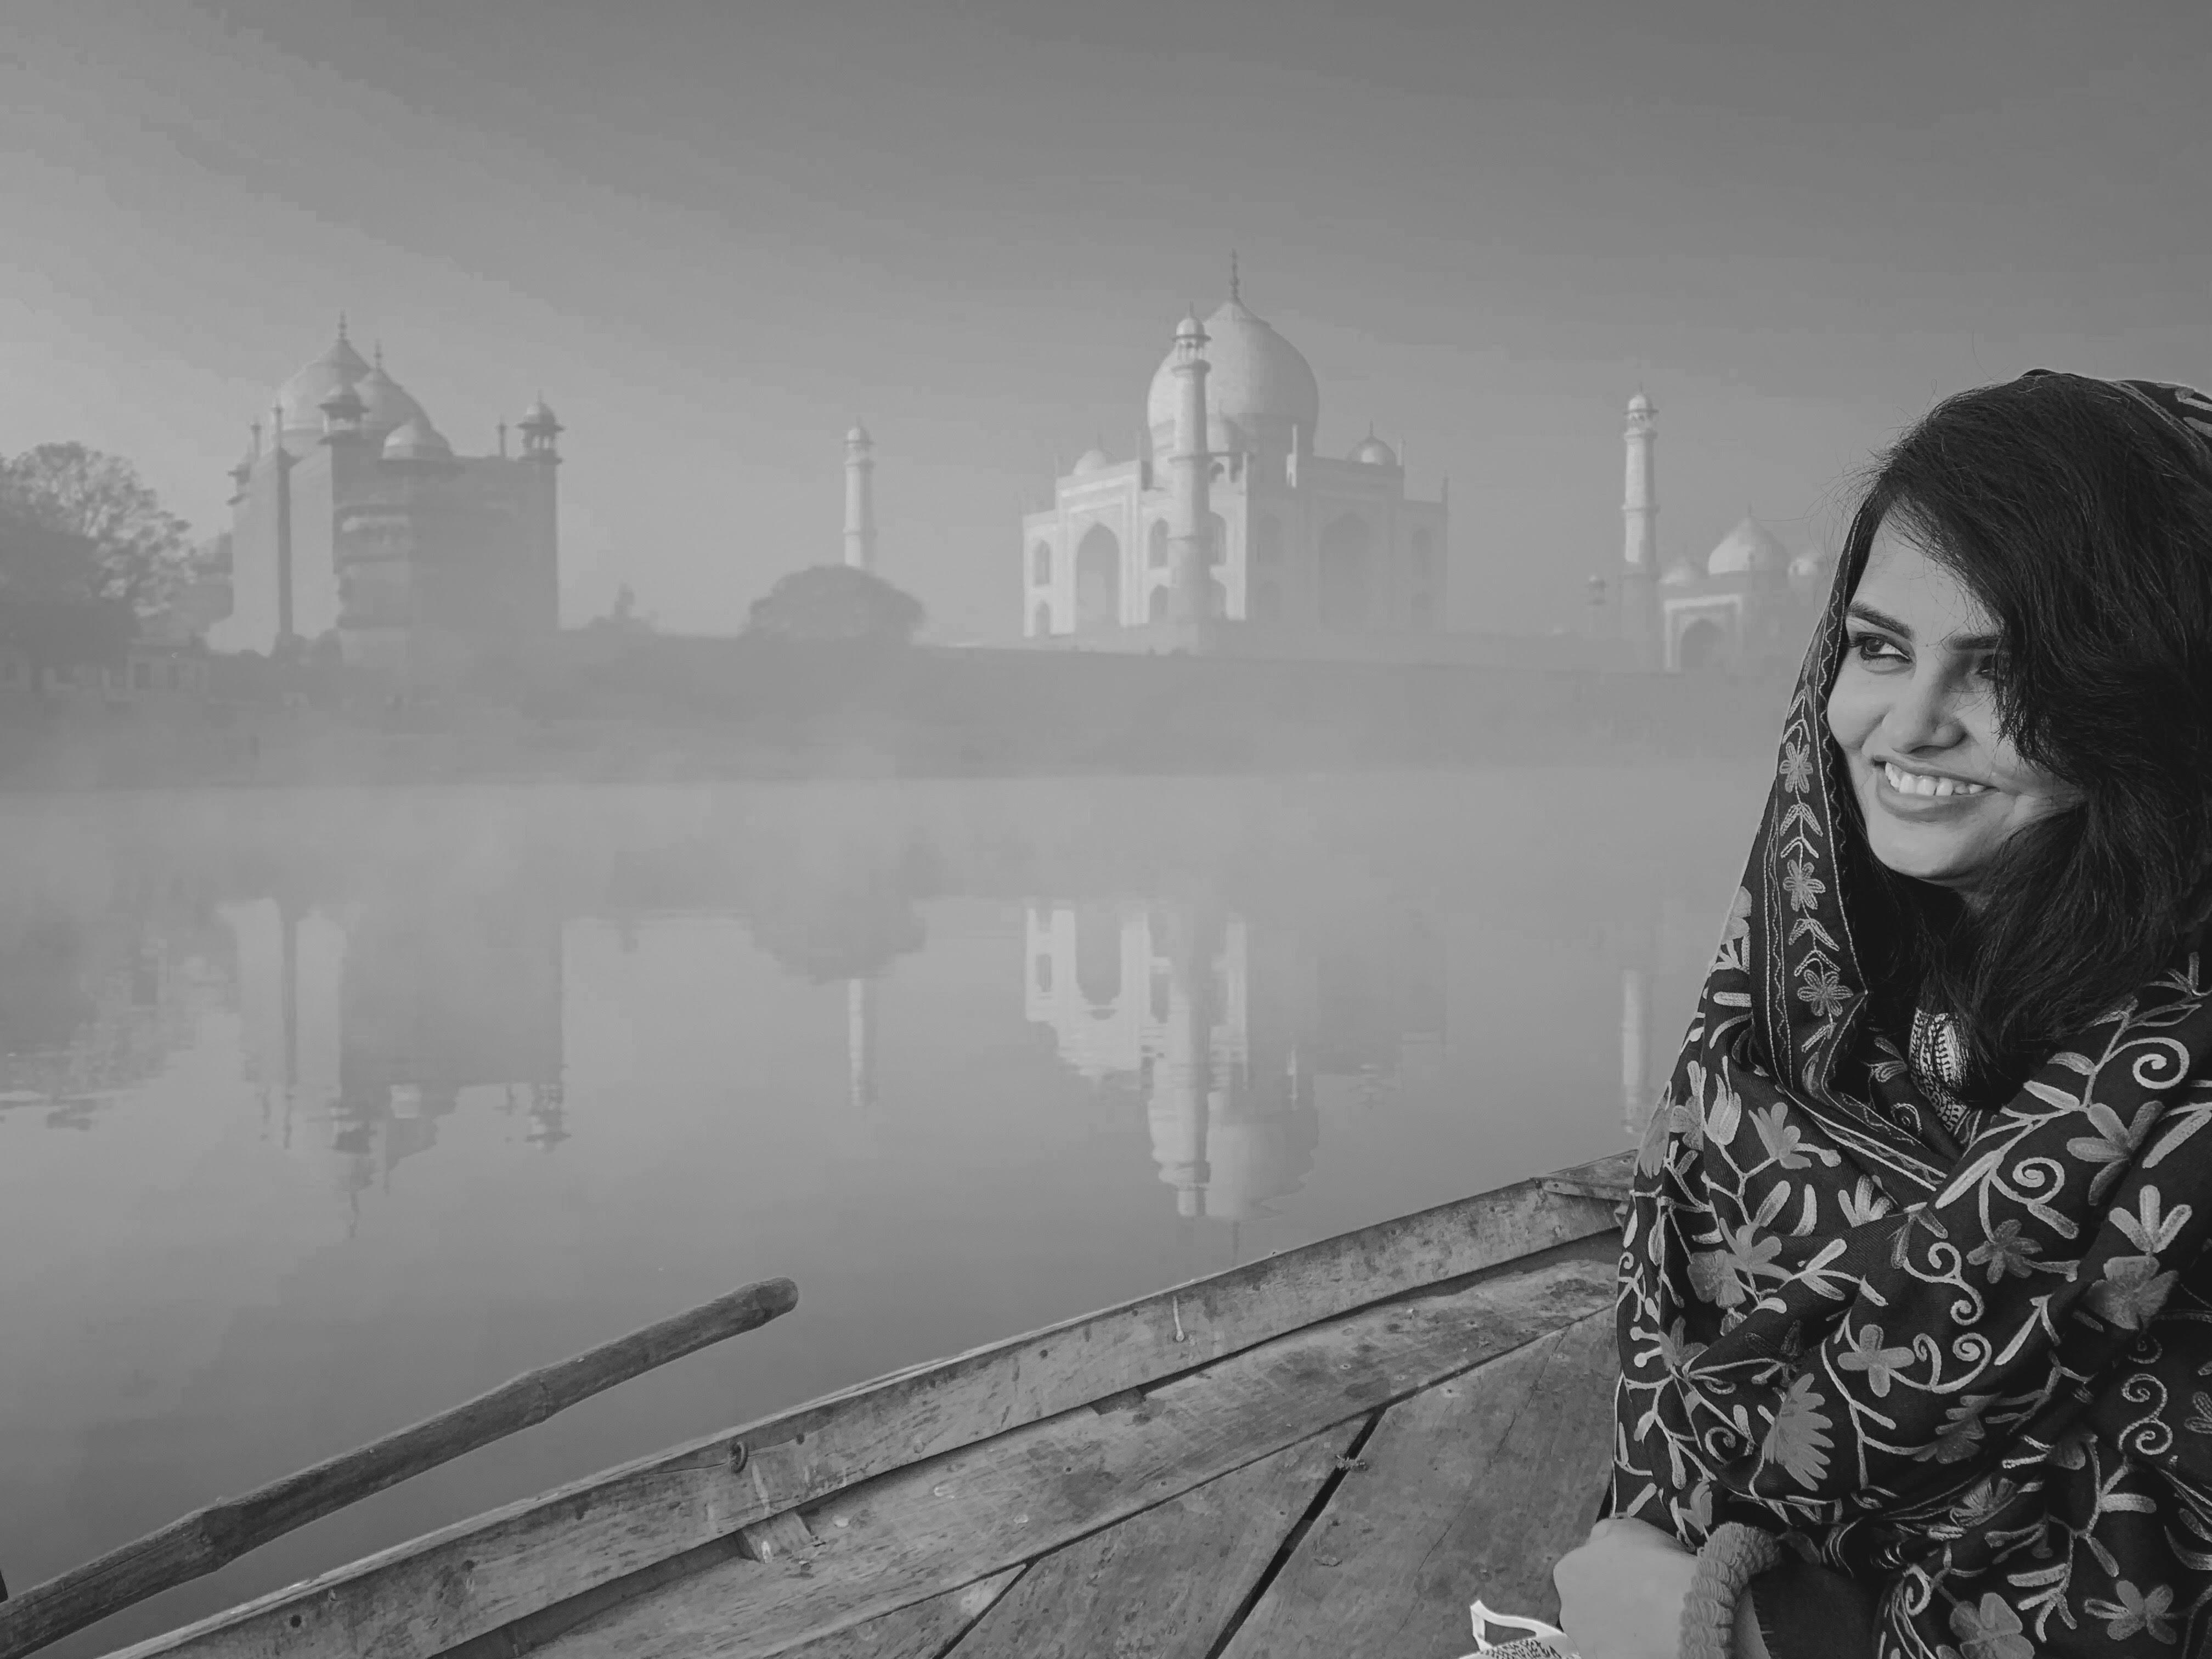 Agra-+the+city+of+taj%2c+of+lost+love+on+the+banks+of+lost+river